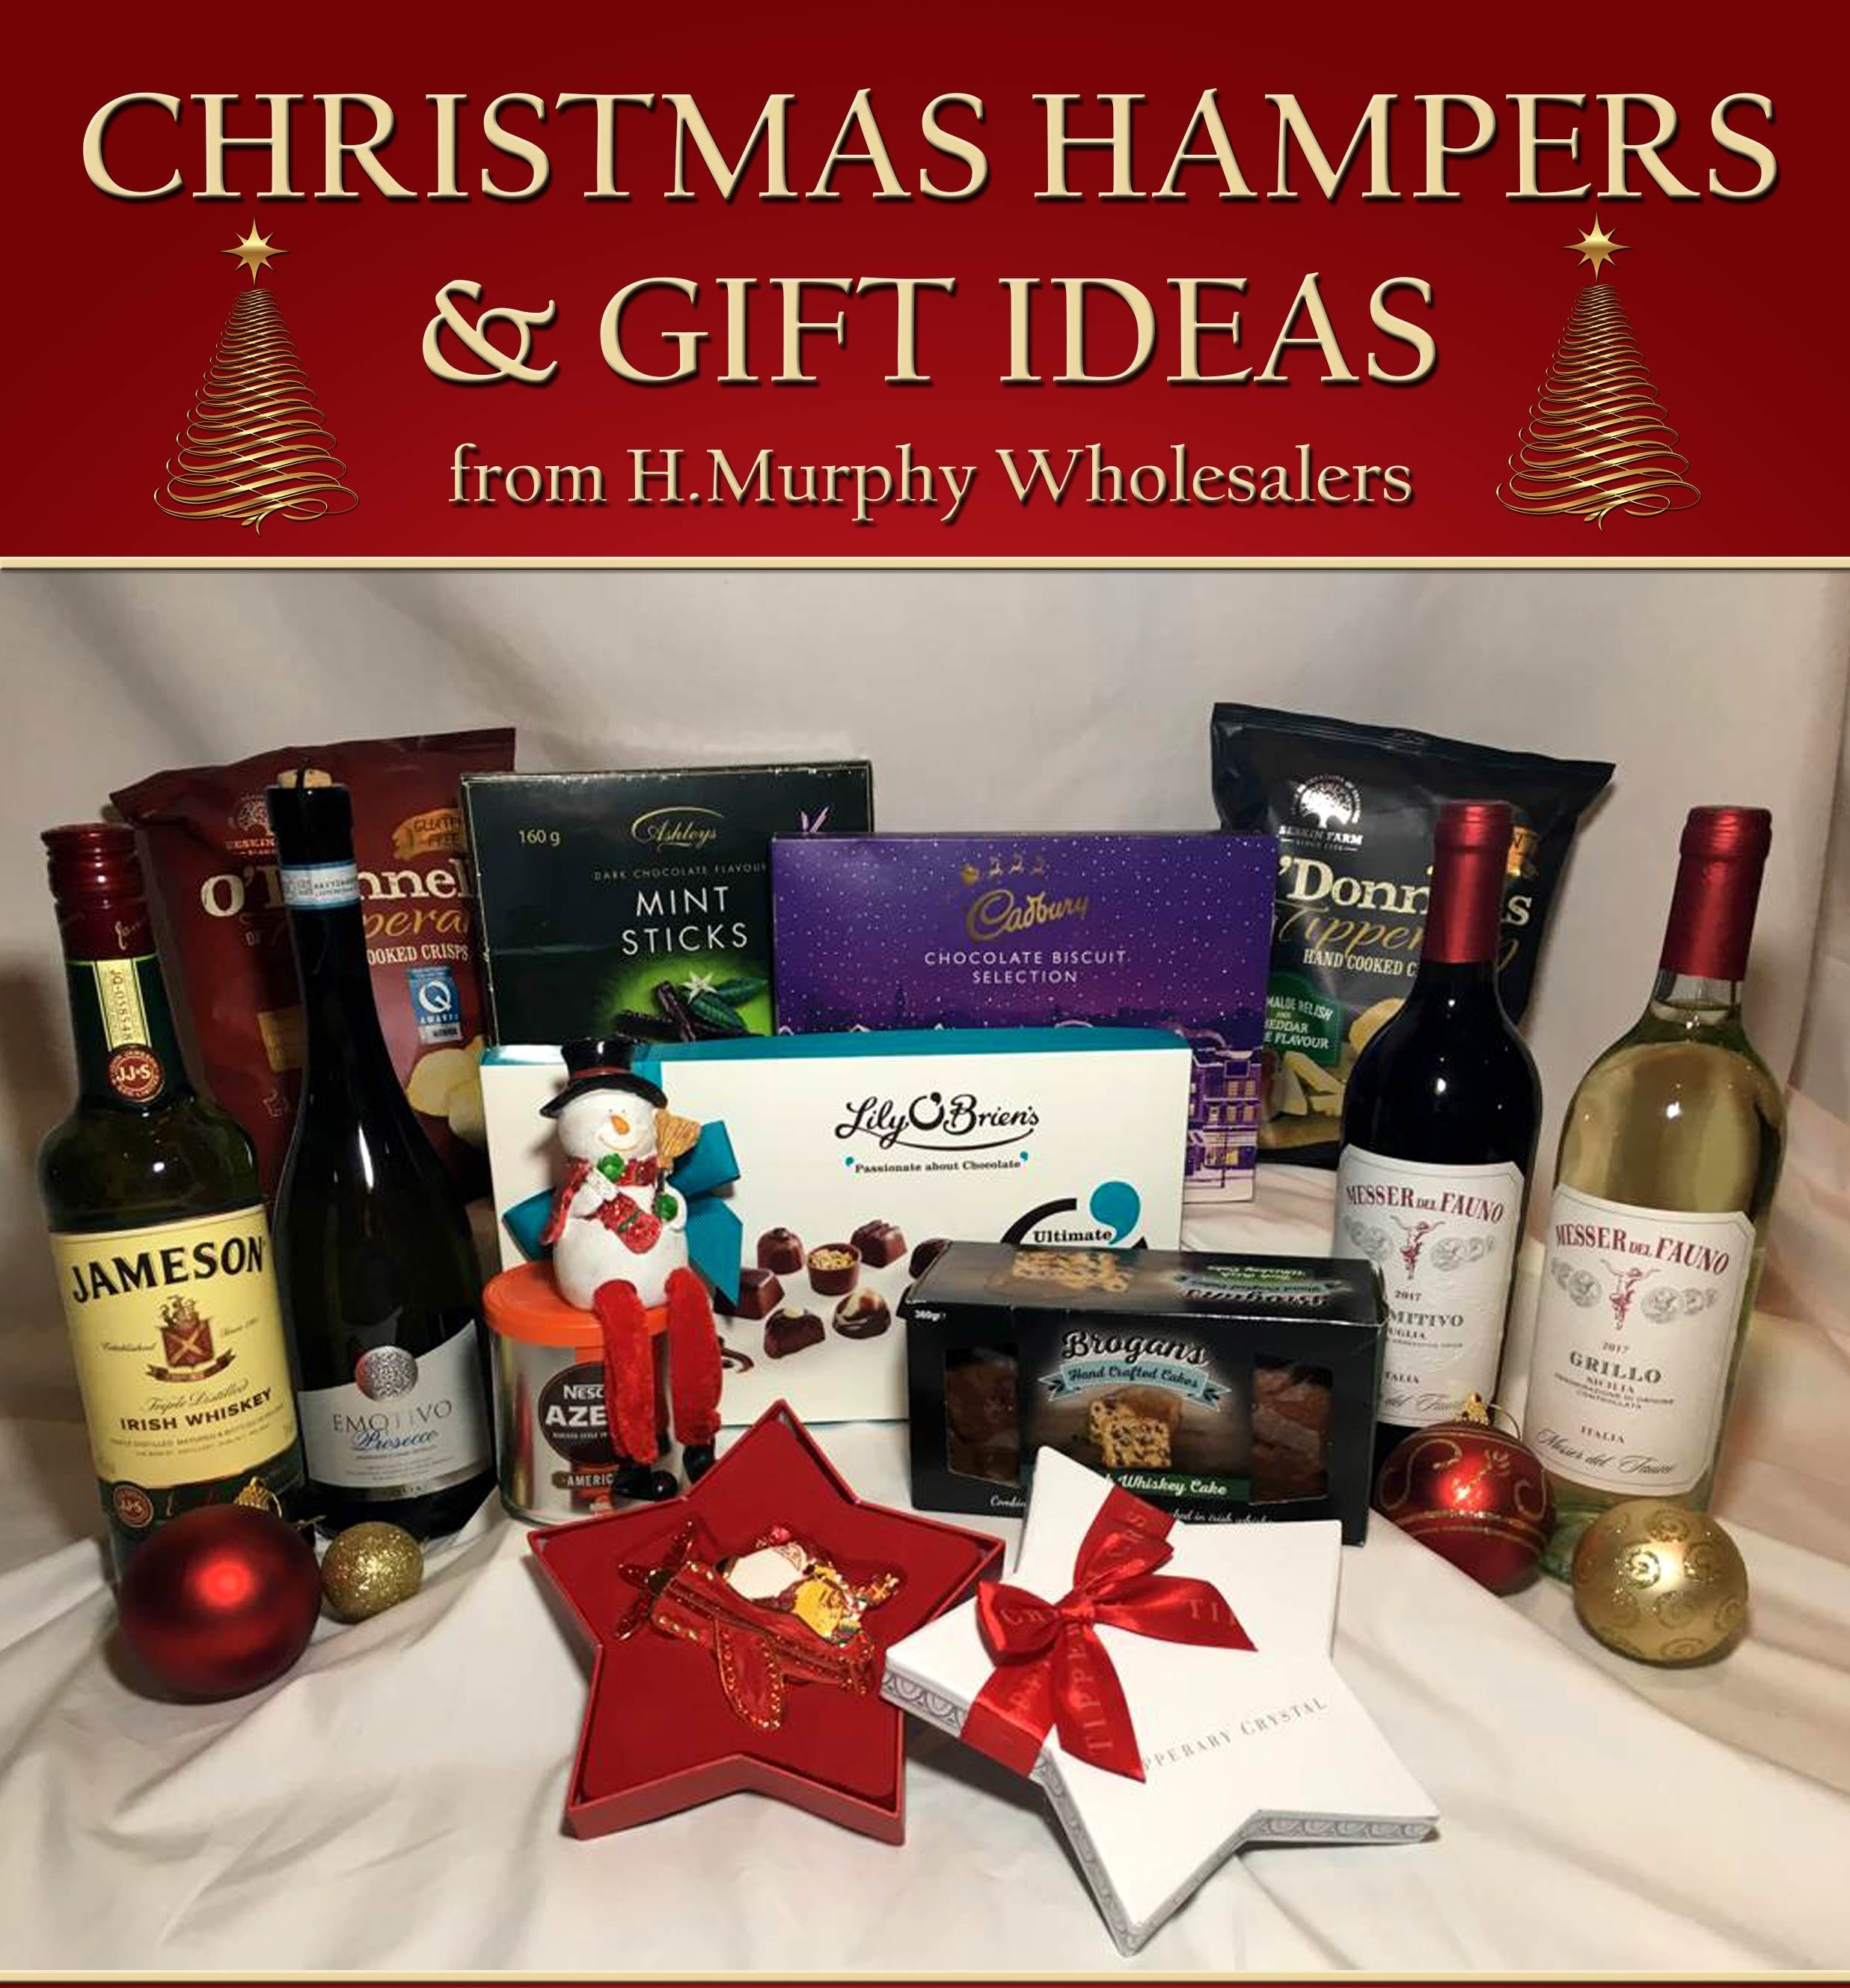 Christmas Hampers And Gift Ideas From H. Murphy Wholesalers